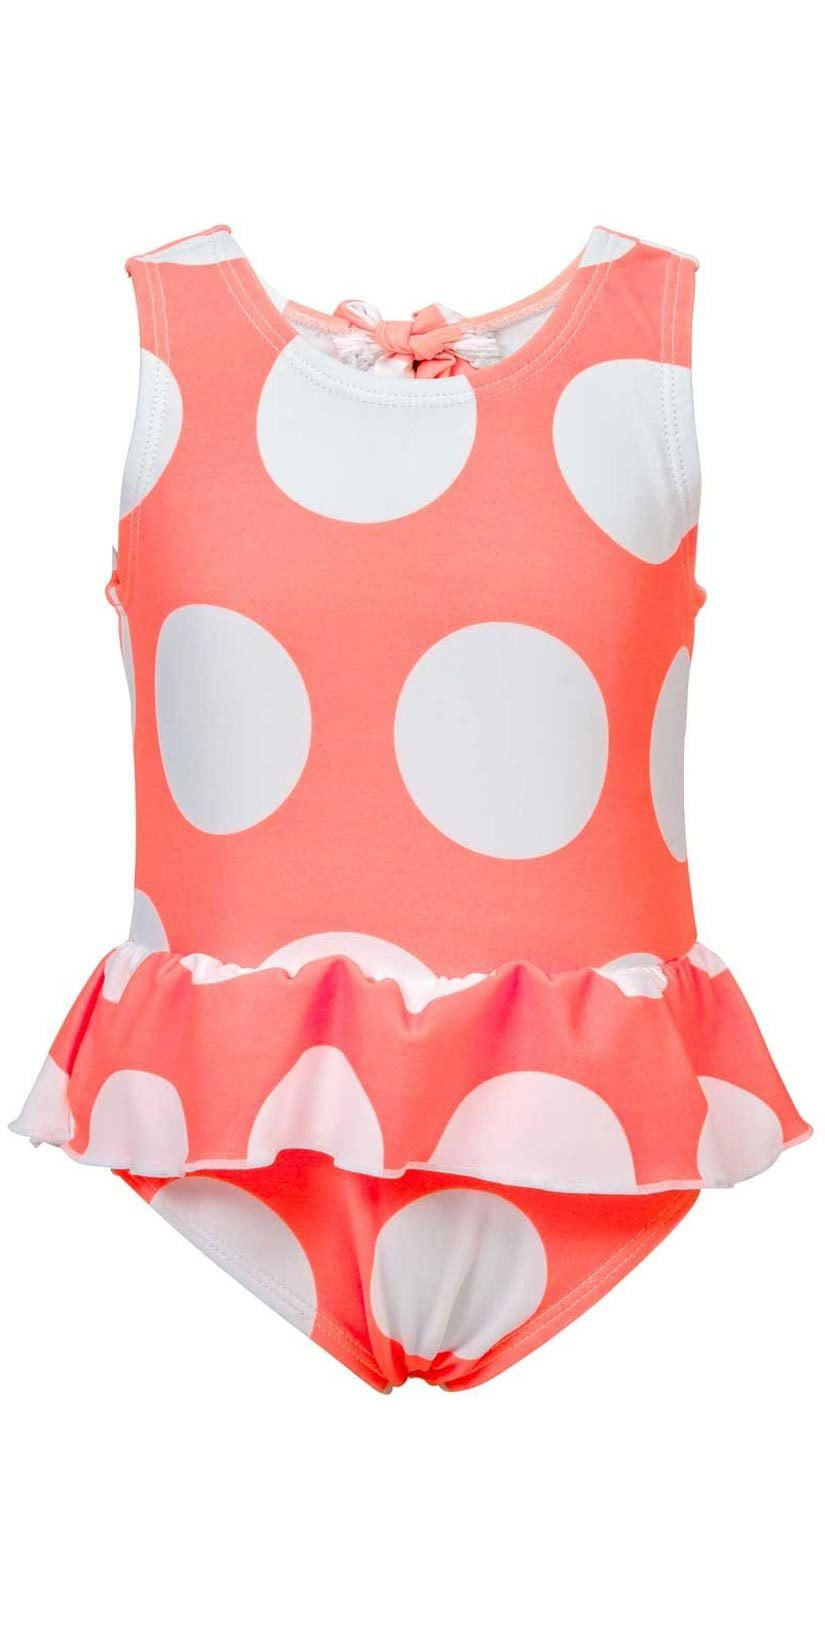 Baby girl's neon coral polka dot swimsuit